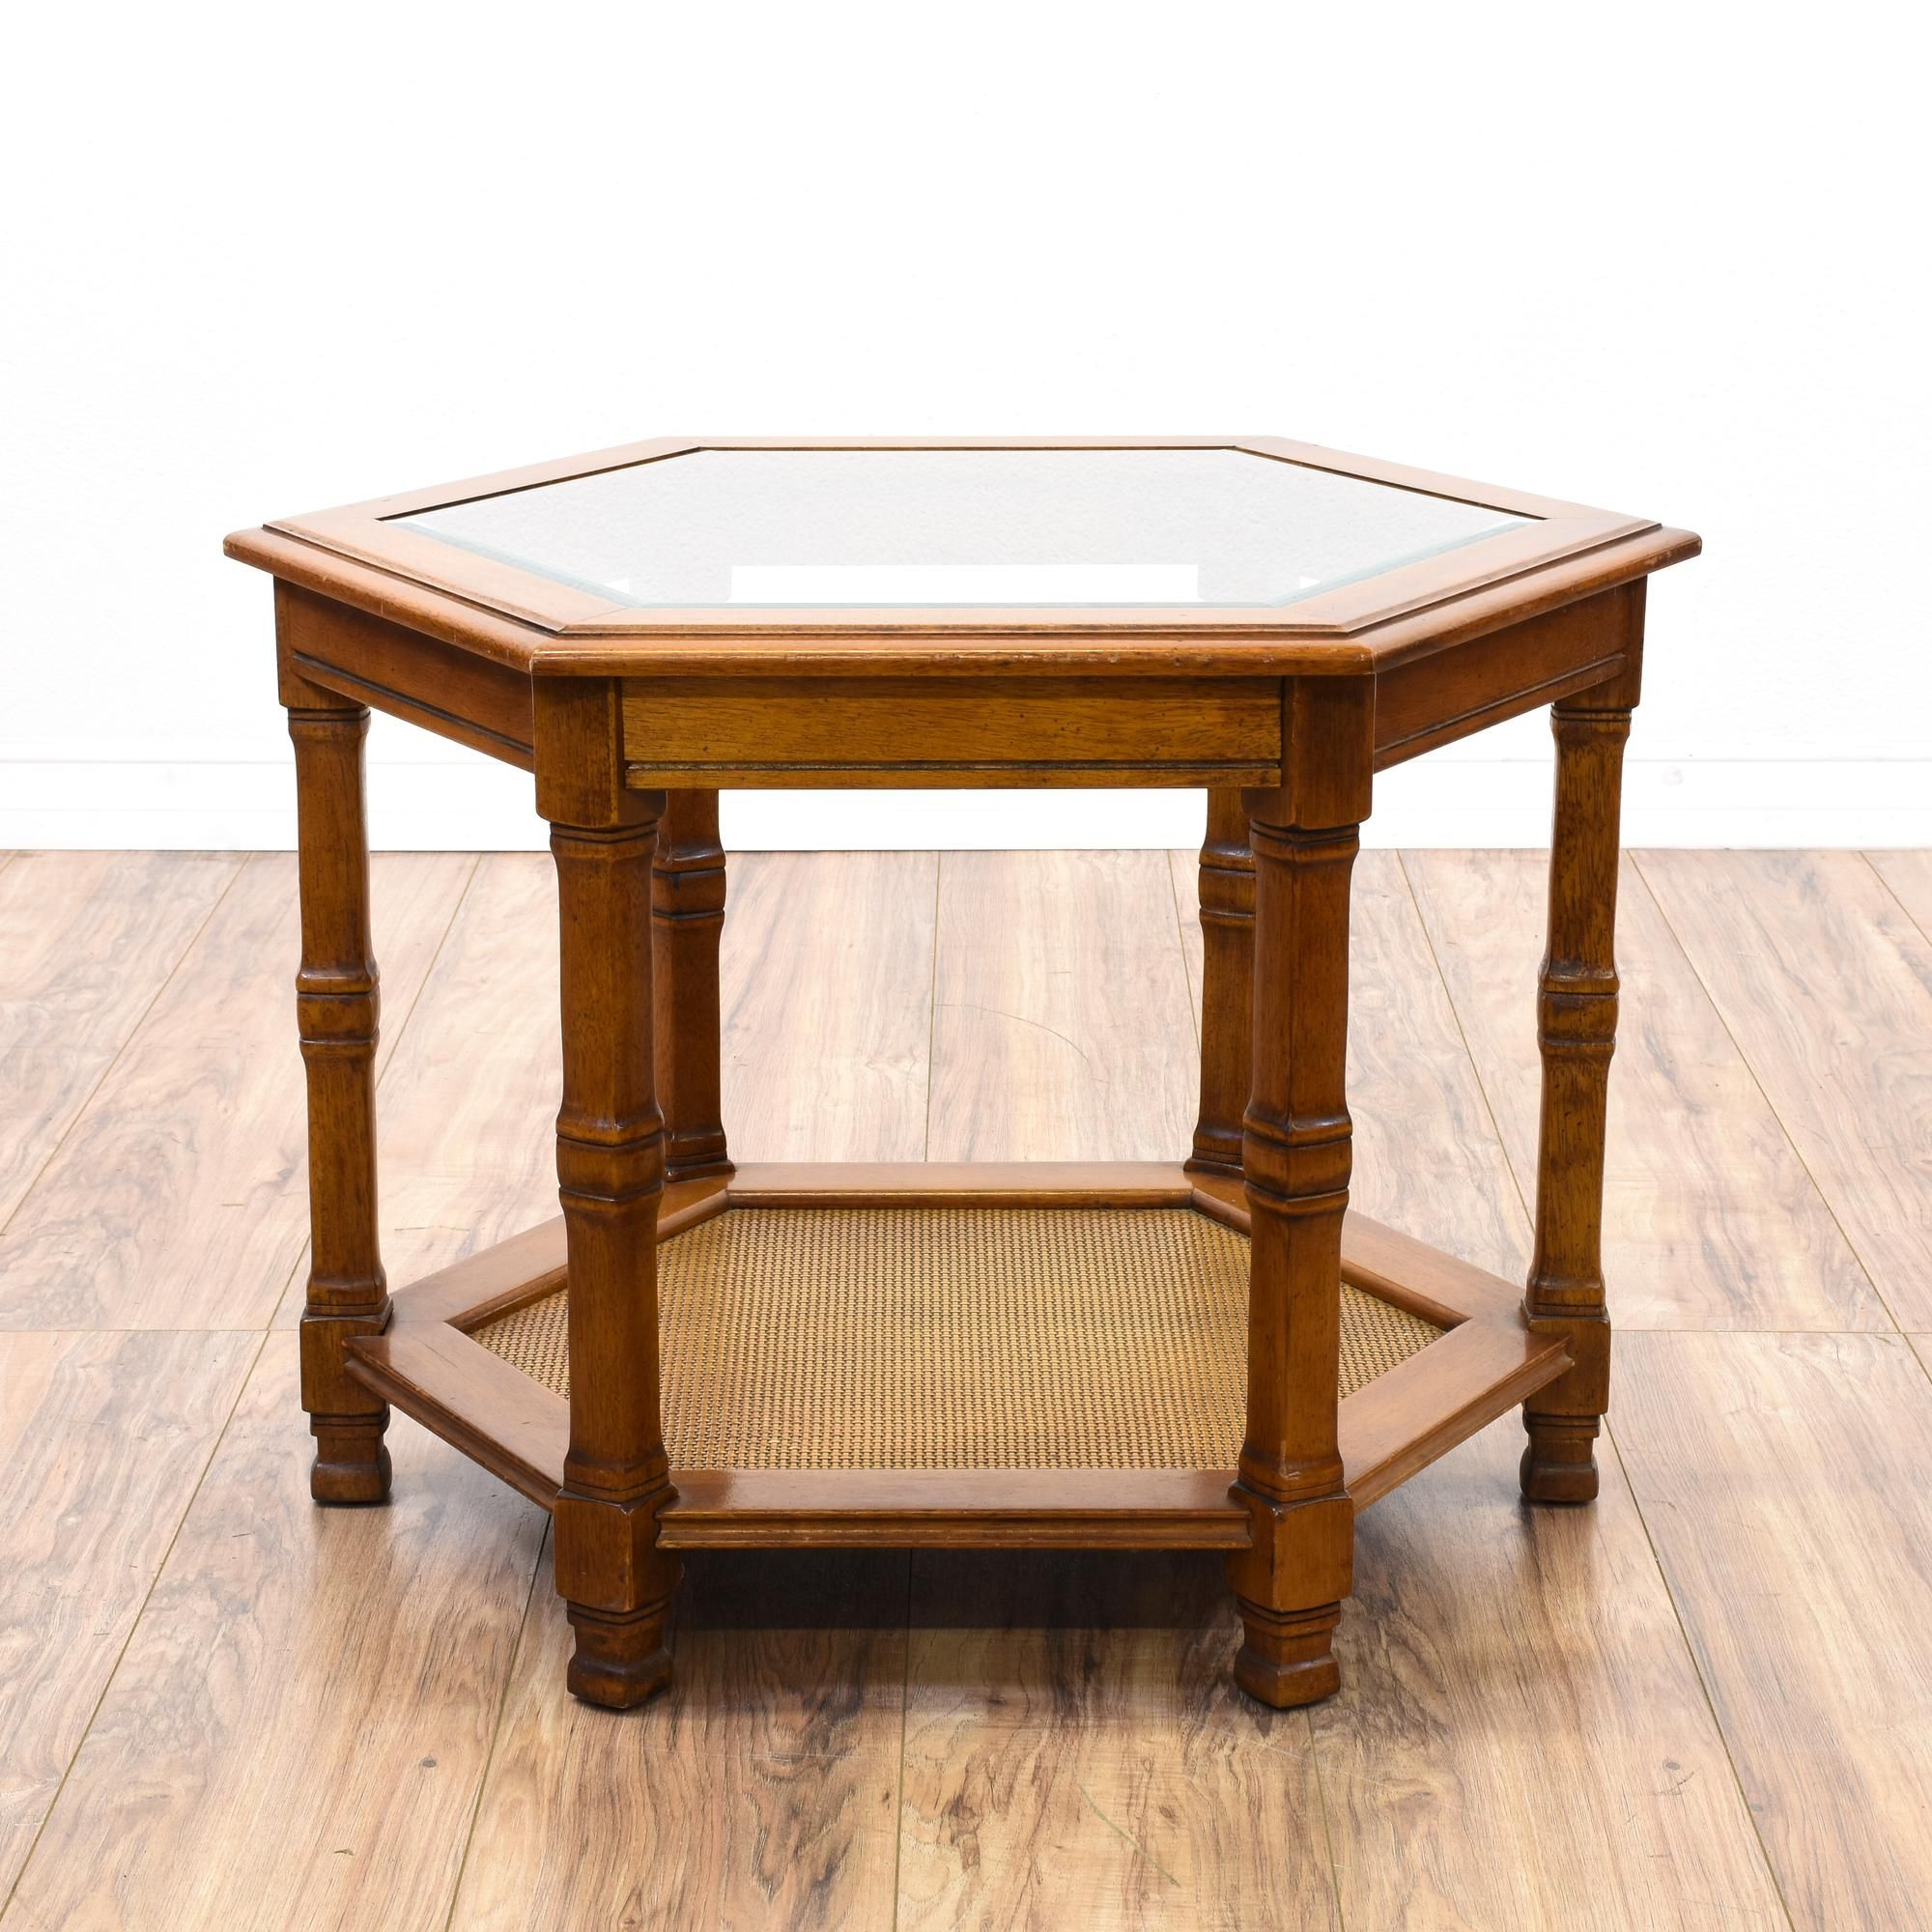 This Hexagon End Table Is Featured In A Solid Wood With A with regard to Solid And Composite Wood Buffets In Cappuccino Finish (Image 21 of 30)